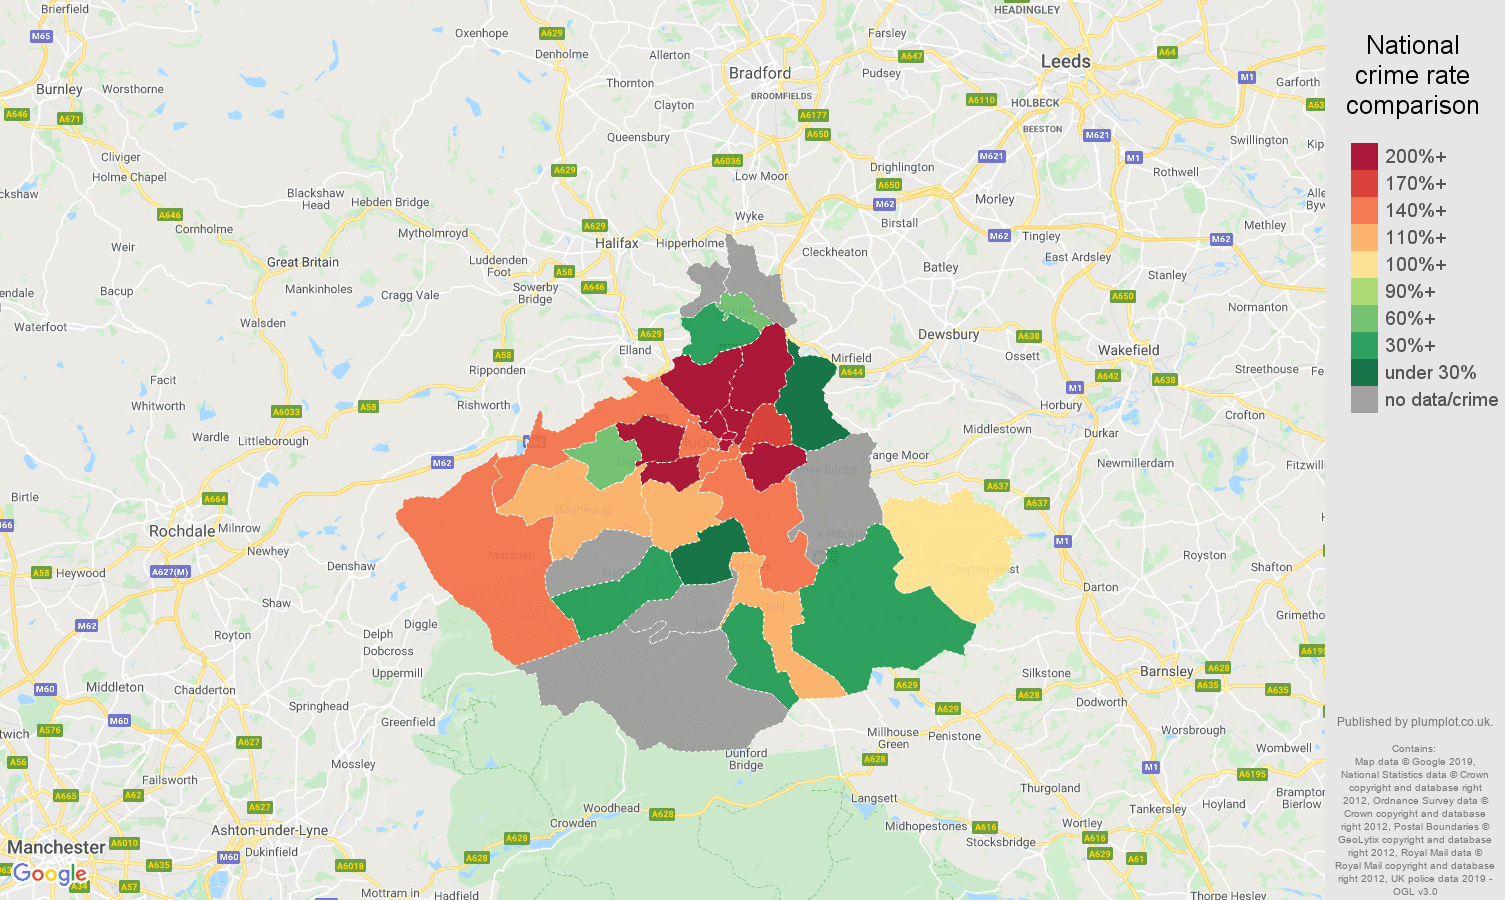 Huddersfield possession of weapons crime rate comparison map